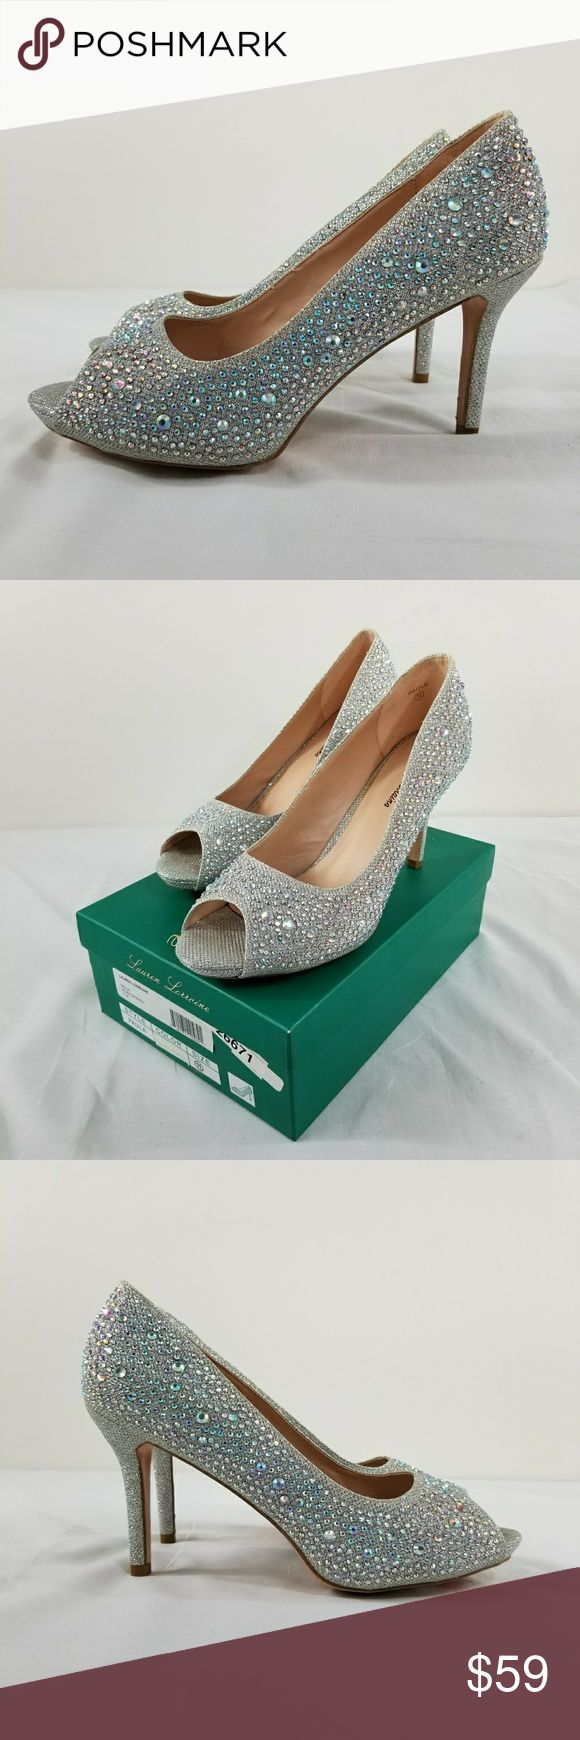 """Lauren Lorraine Open Toe Sparkle Pump Nordstrom Purchased from Nordstrom Department Store. 4"""" heel  .5"""" platform sole Fabric upper with synthetic rhinestones  Man Made Inner, Outer soles. Shoes are new, never worn. Inner arch sole area has discoloration due to shoe glue. Areas of outer rhinestone sequin sparkle have surface scratches. Lauren Lorraine Shoes Heels"""